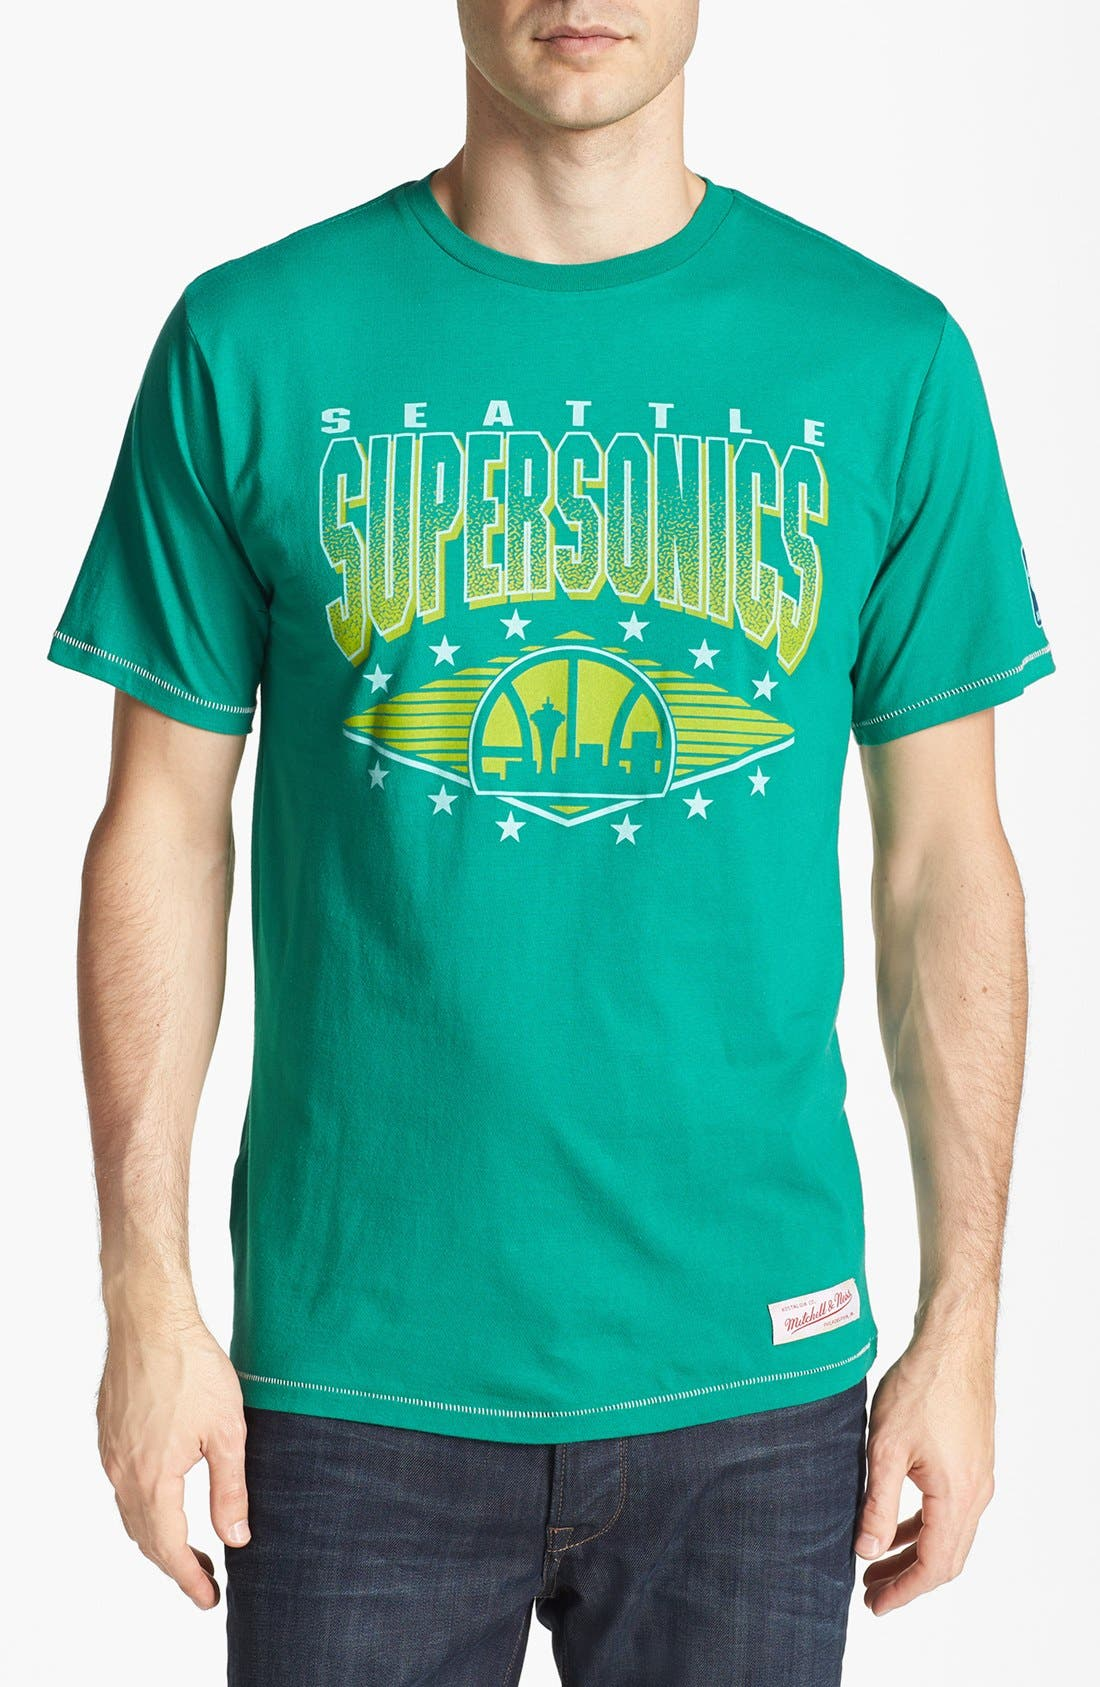 'Seattle Supersonics' T-Shirt,                             Main thumbnail 1, color,